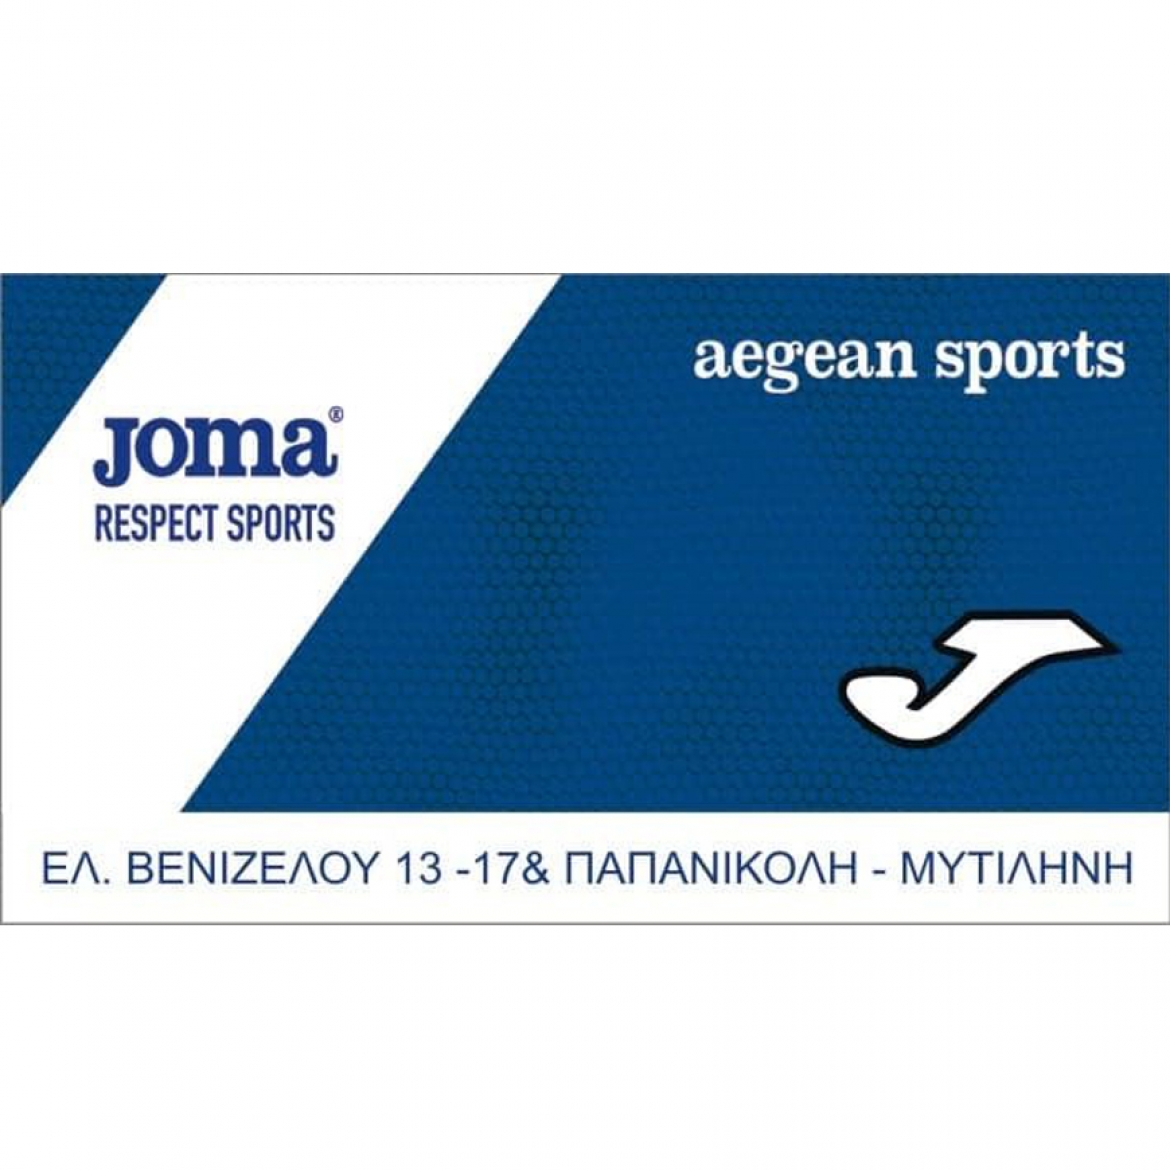 Aegean Sports by JOMA